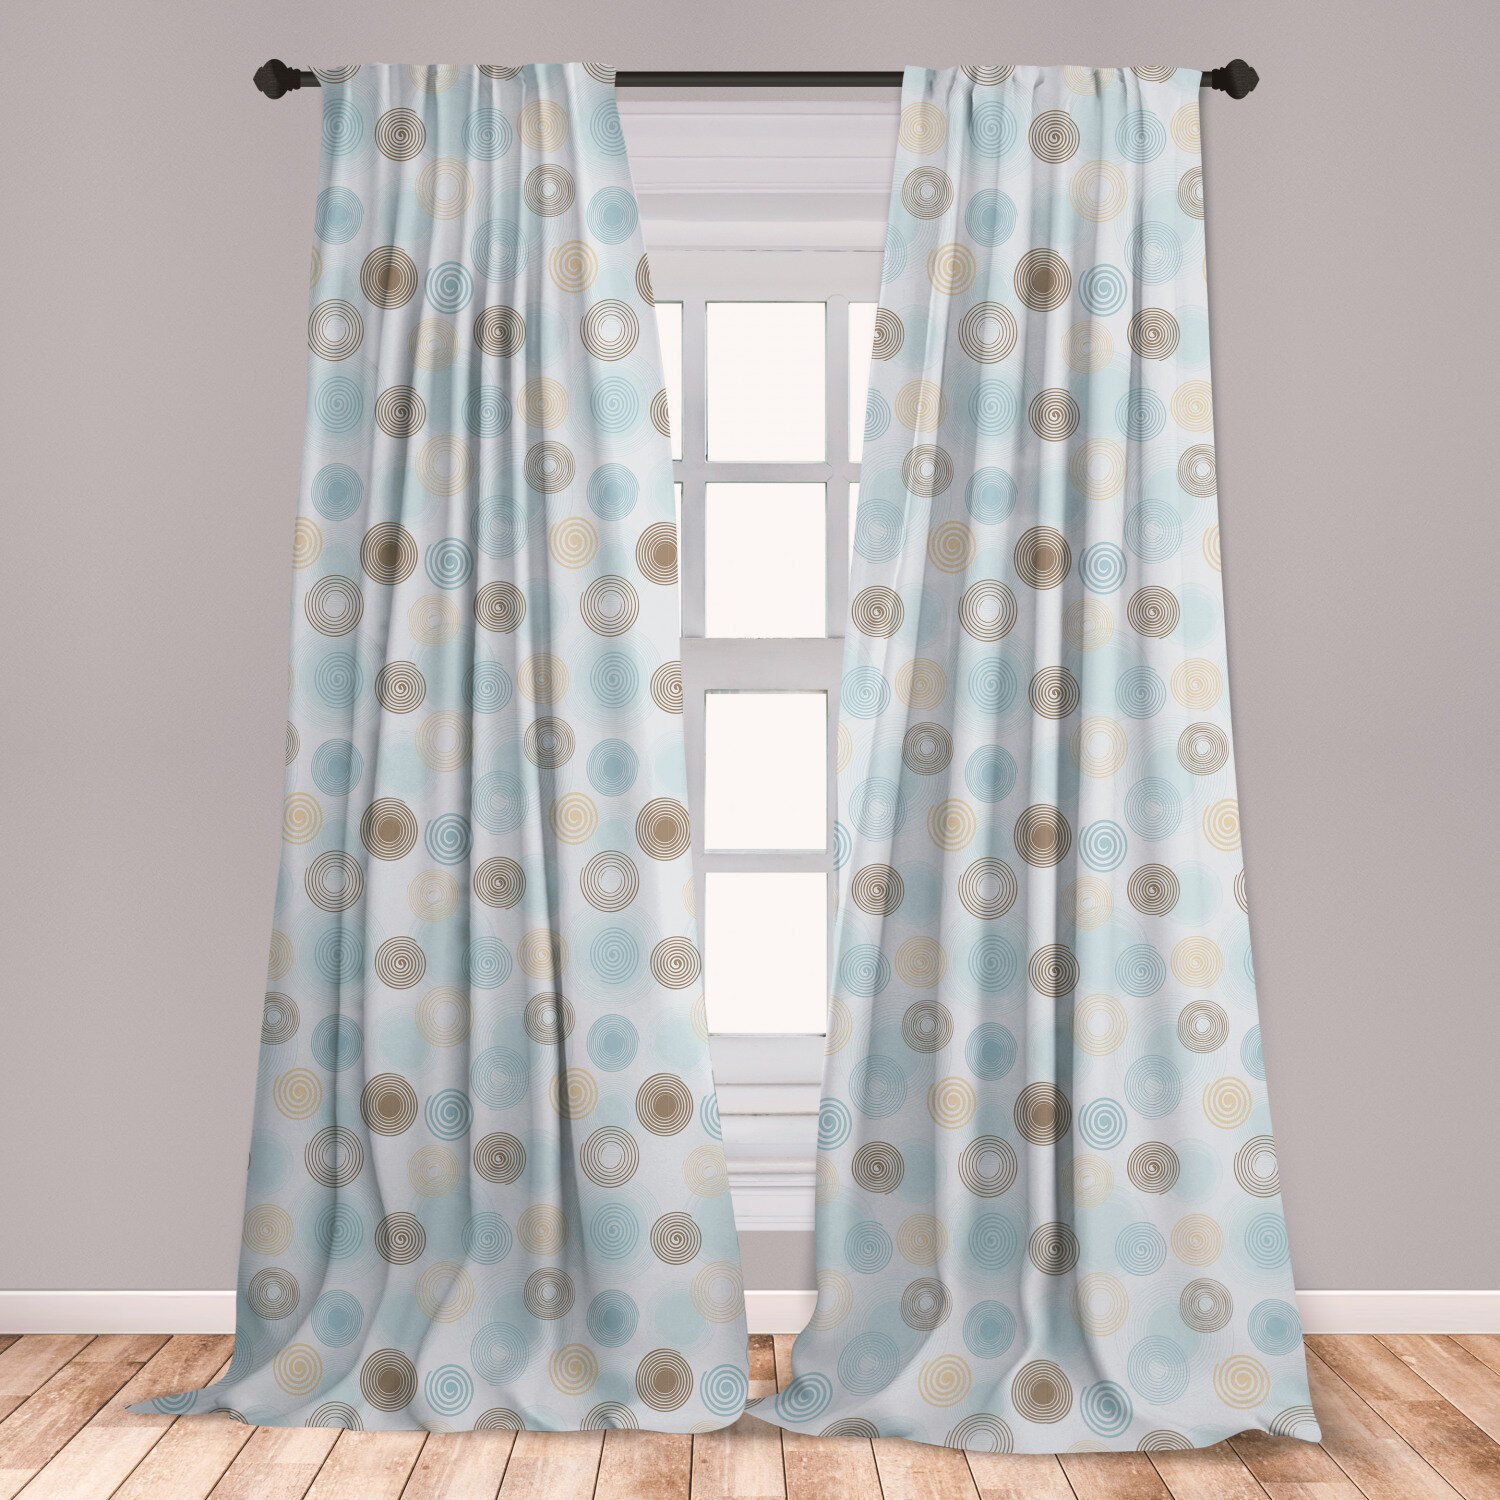 Navy Blue Curtains for Bedroom Awesome Ambesonne Brown and Blue Curtains Twirls Vortex Design Geometric Curved Lines Hypnotic Elements Window Treatments 2 Panel Set for Living Room